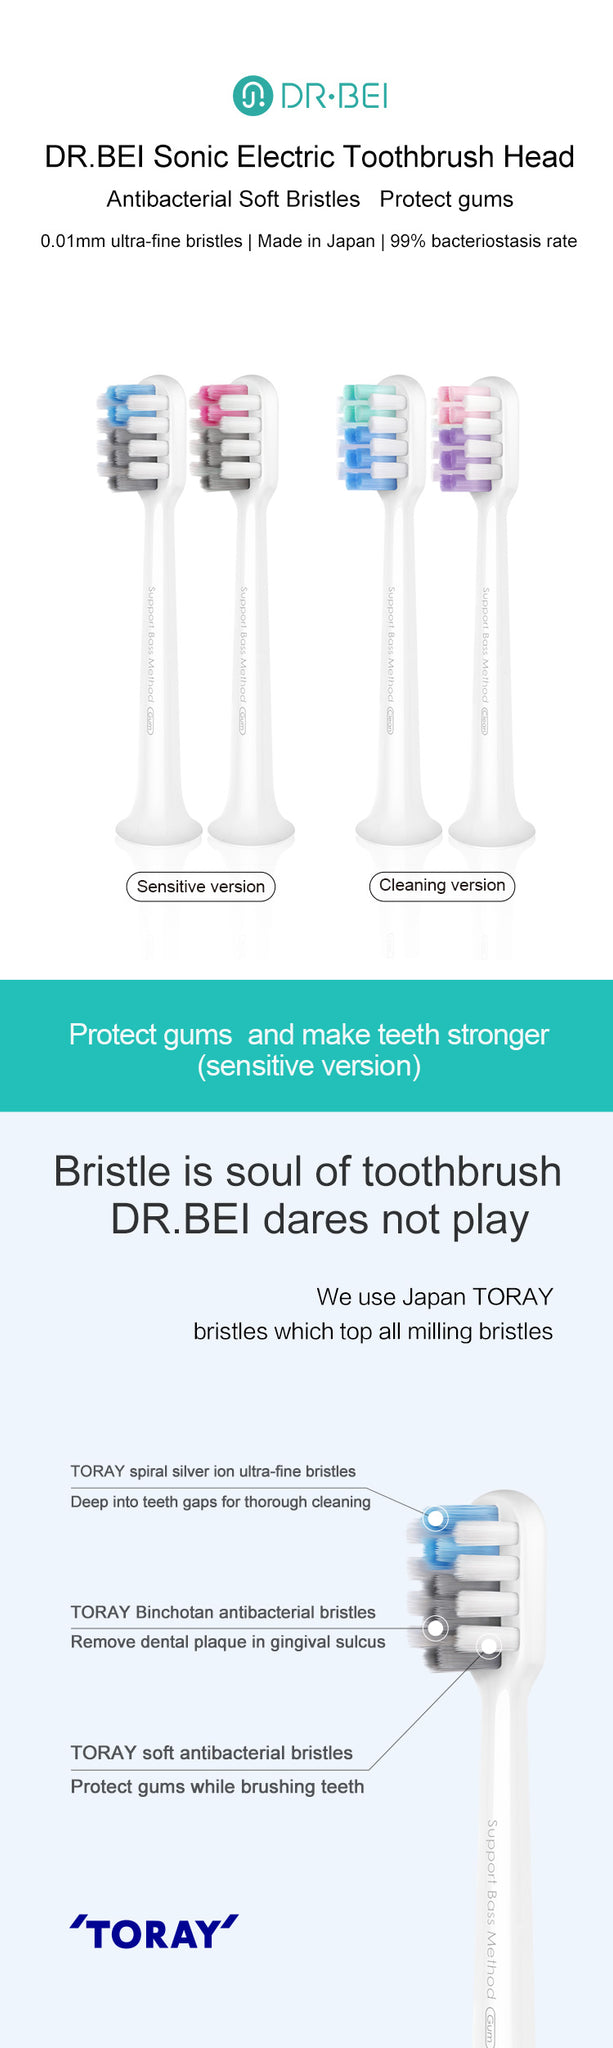 DR.BEI C1 Toothbrush Heads, 2 Pieces Xiaomi Youpin DR·BEI Electric Toothbrush Heads for DR.BEI C01 Sonic Electric Toothbrush Replaceable Sensitive / Cleaning Tooth Brush Heads